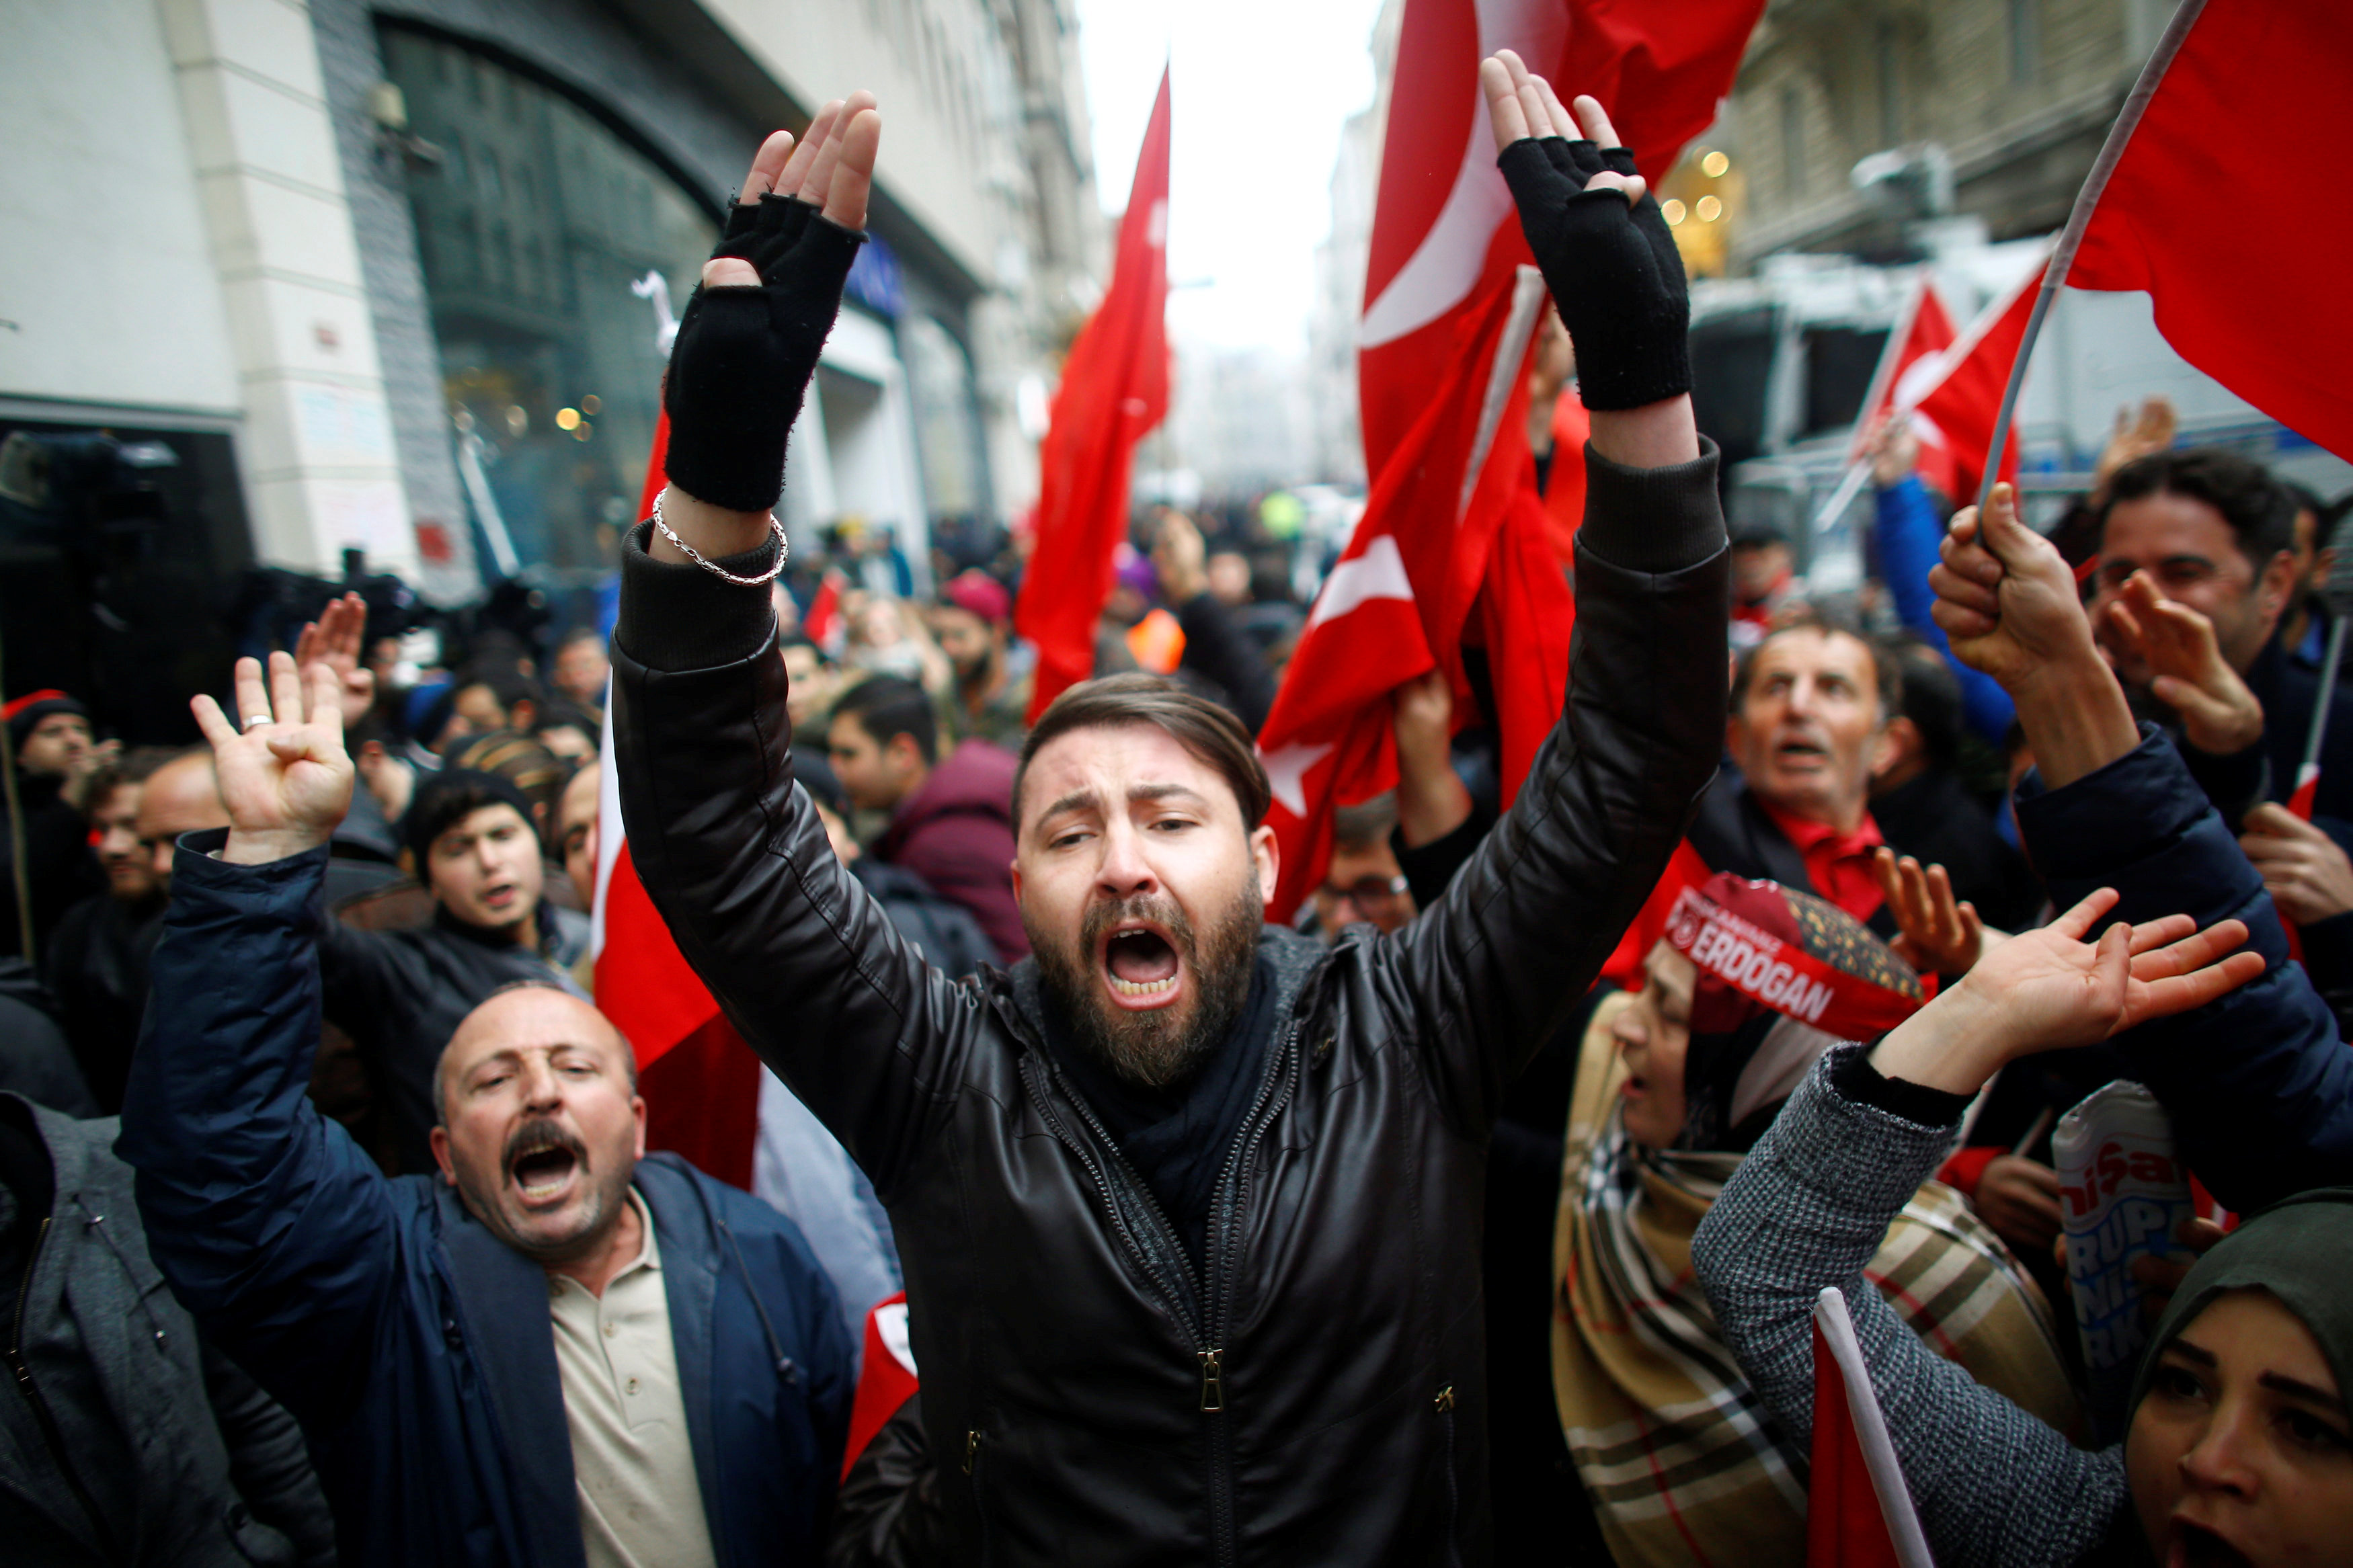 People shout slogans during a protest in front of the Dutch Consulate in Istanbul, Turkey